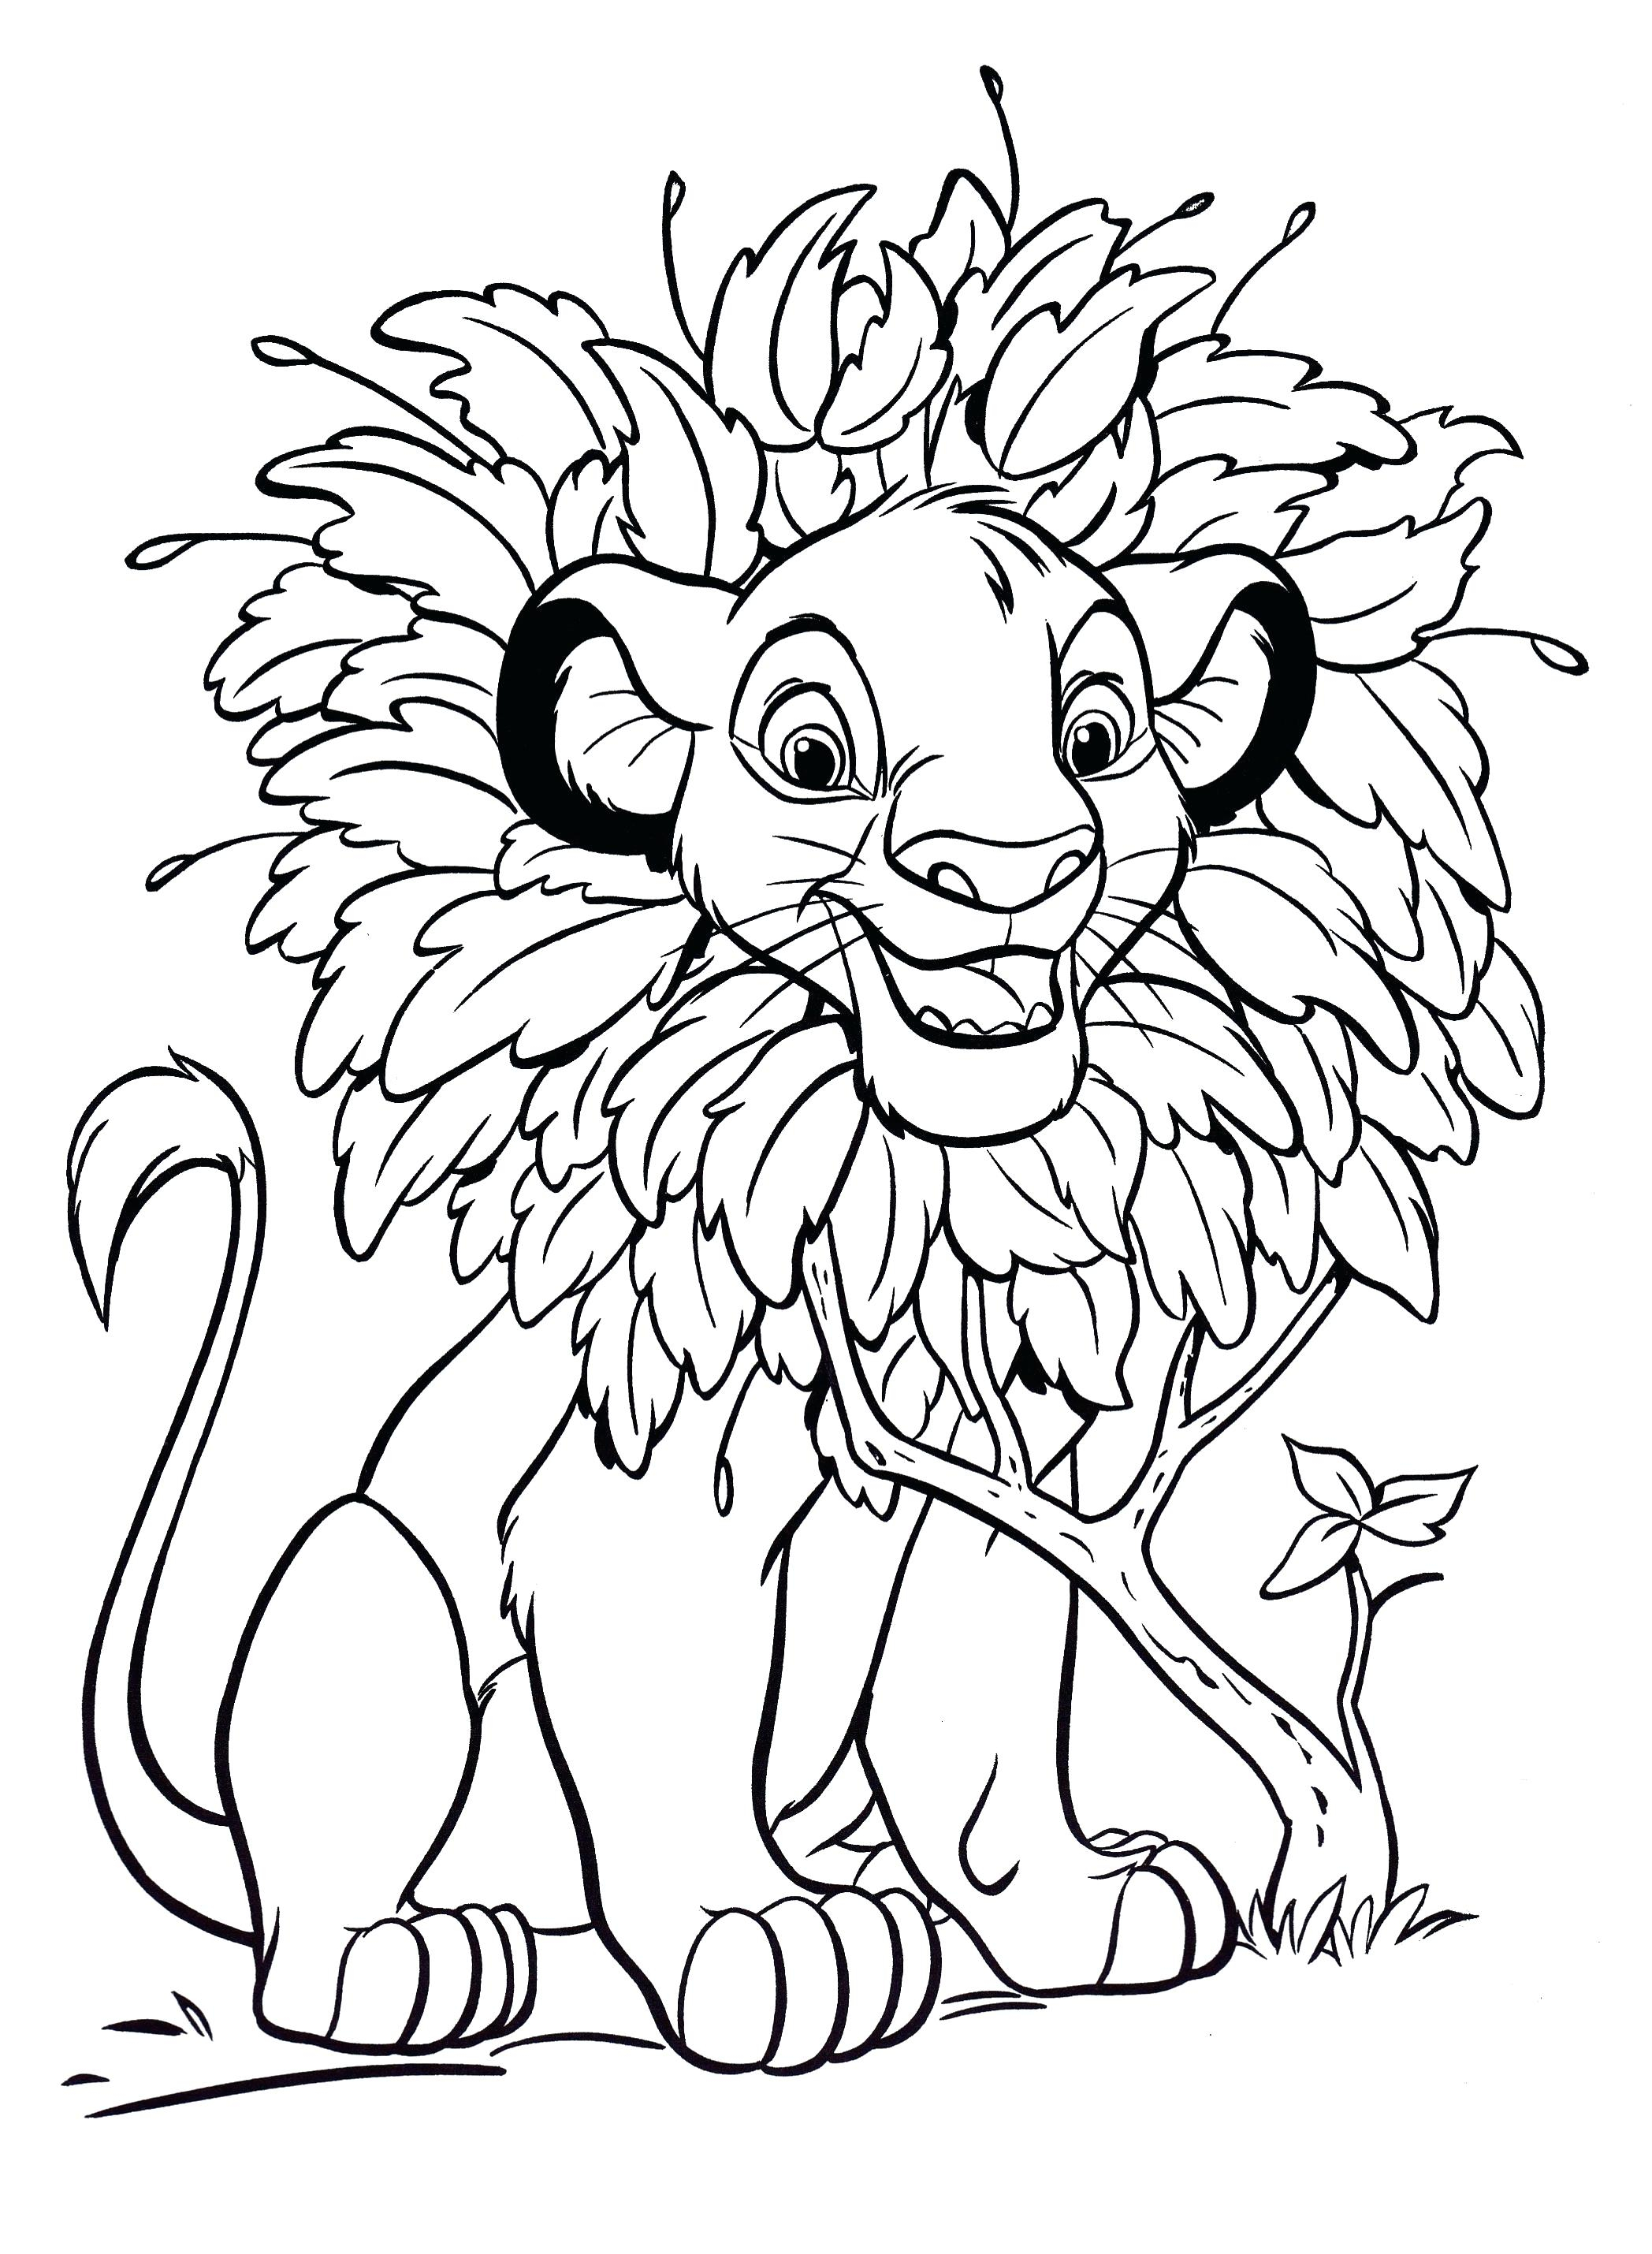 Coloring Pages Disney World Coloring Pages Its A Small Colouring Download Of Walt Disney Coloring Pages Marie Walt Disney Characters Download